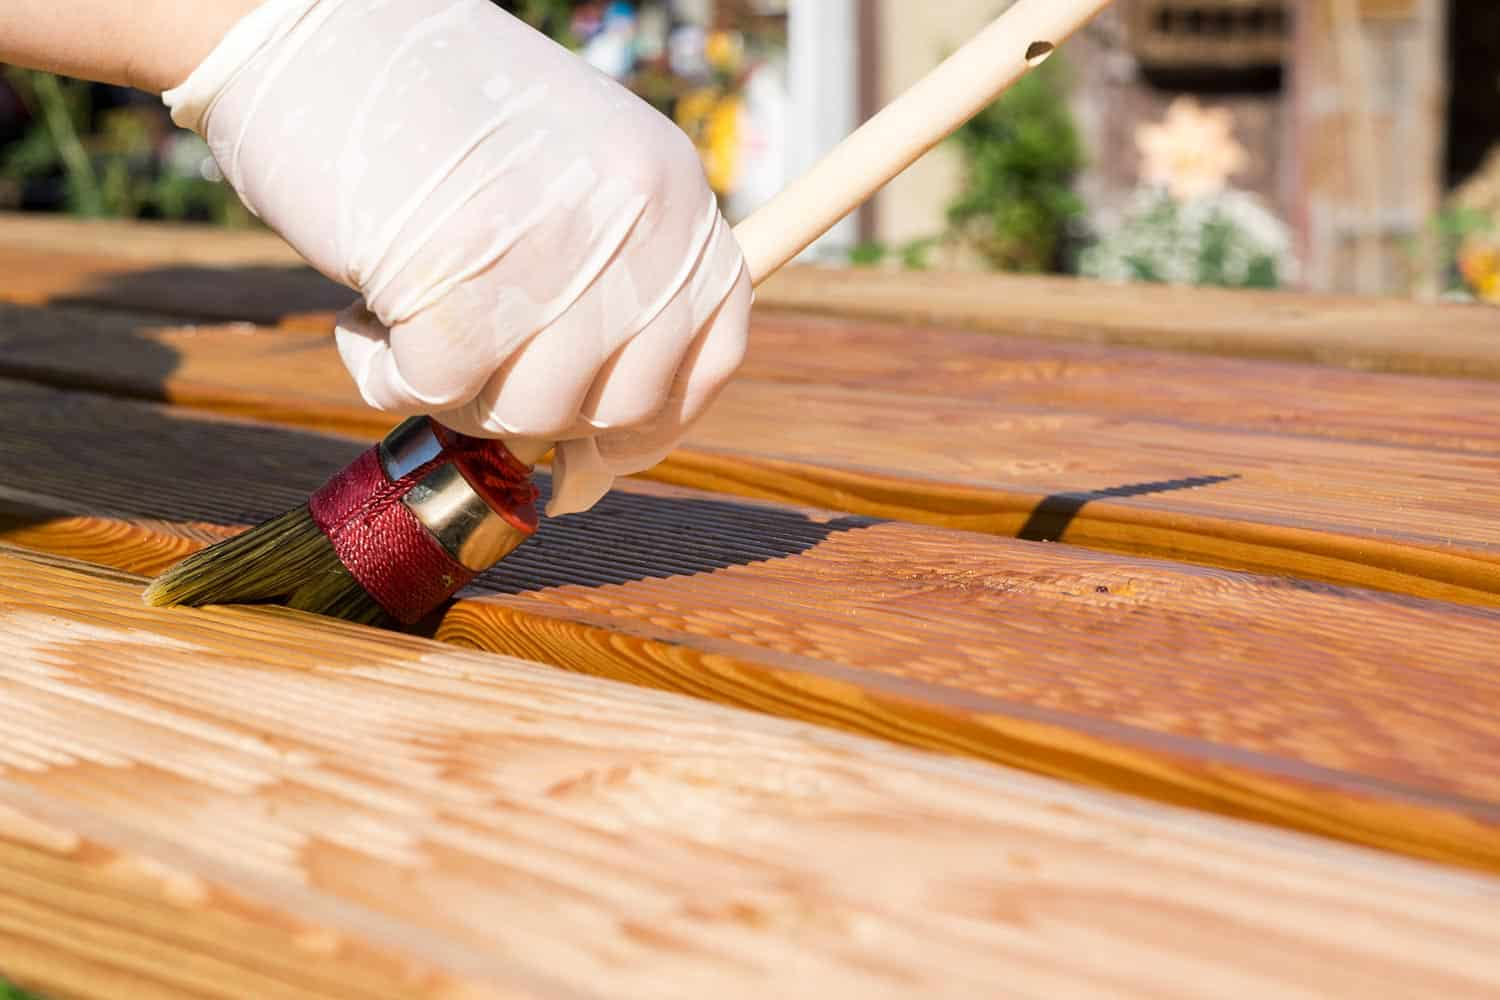 Applying protective varnish or wood oil on a wooden boards